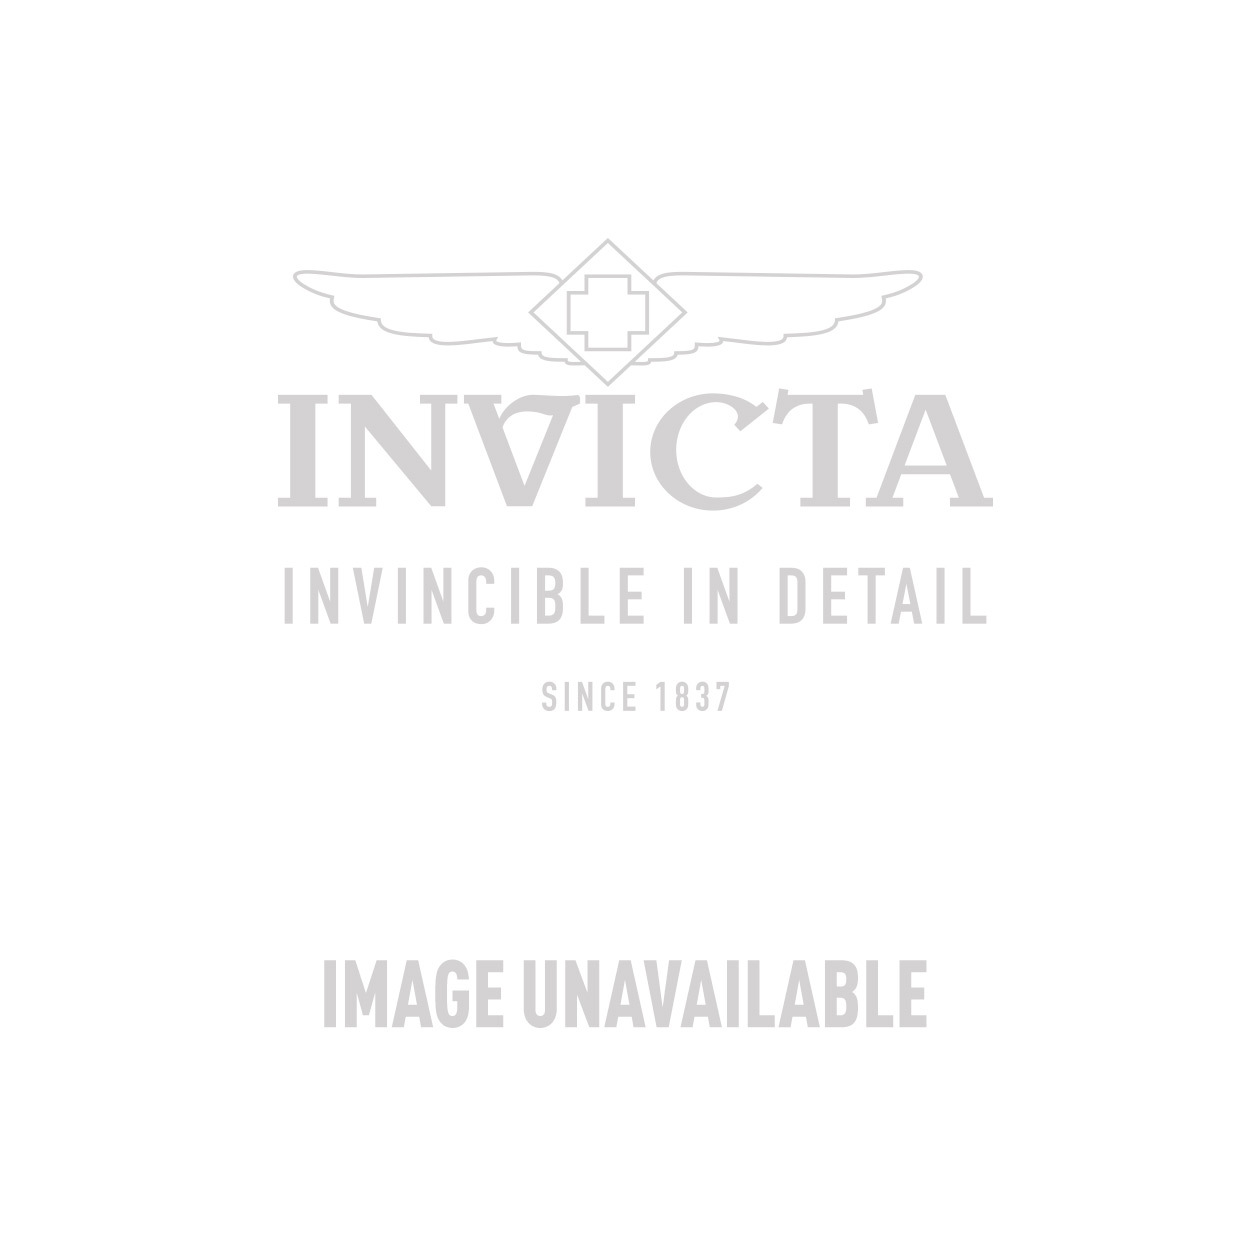 Invicta Excursion Swiss Made Quartz Watch - Titanium case with Titanium tone Titanium band - Model 90154